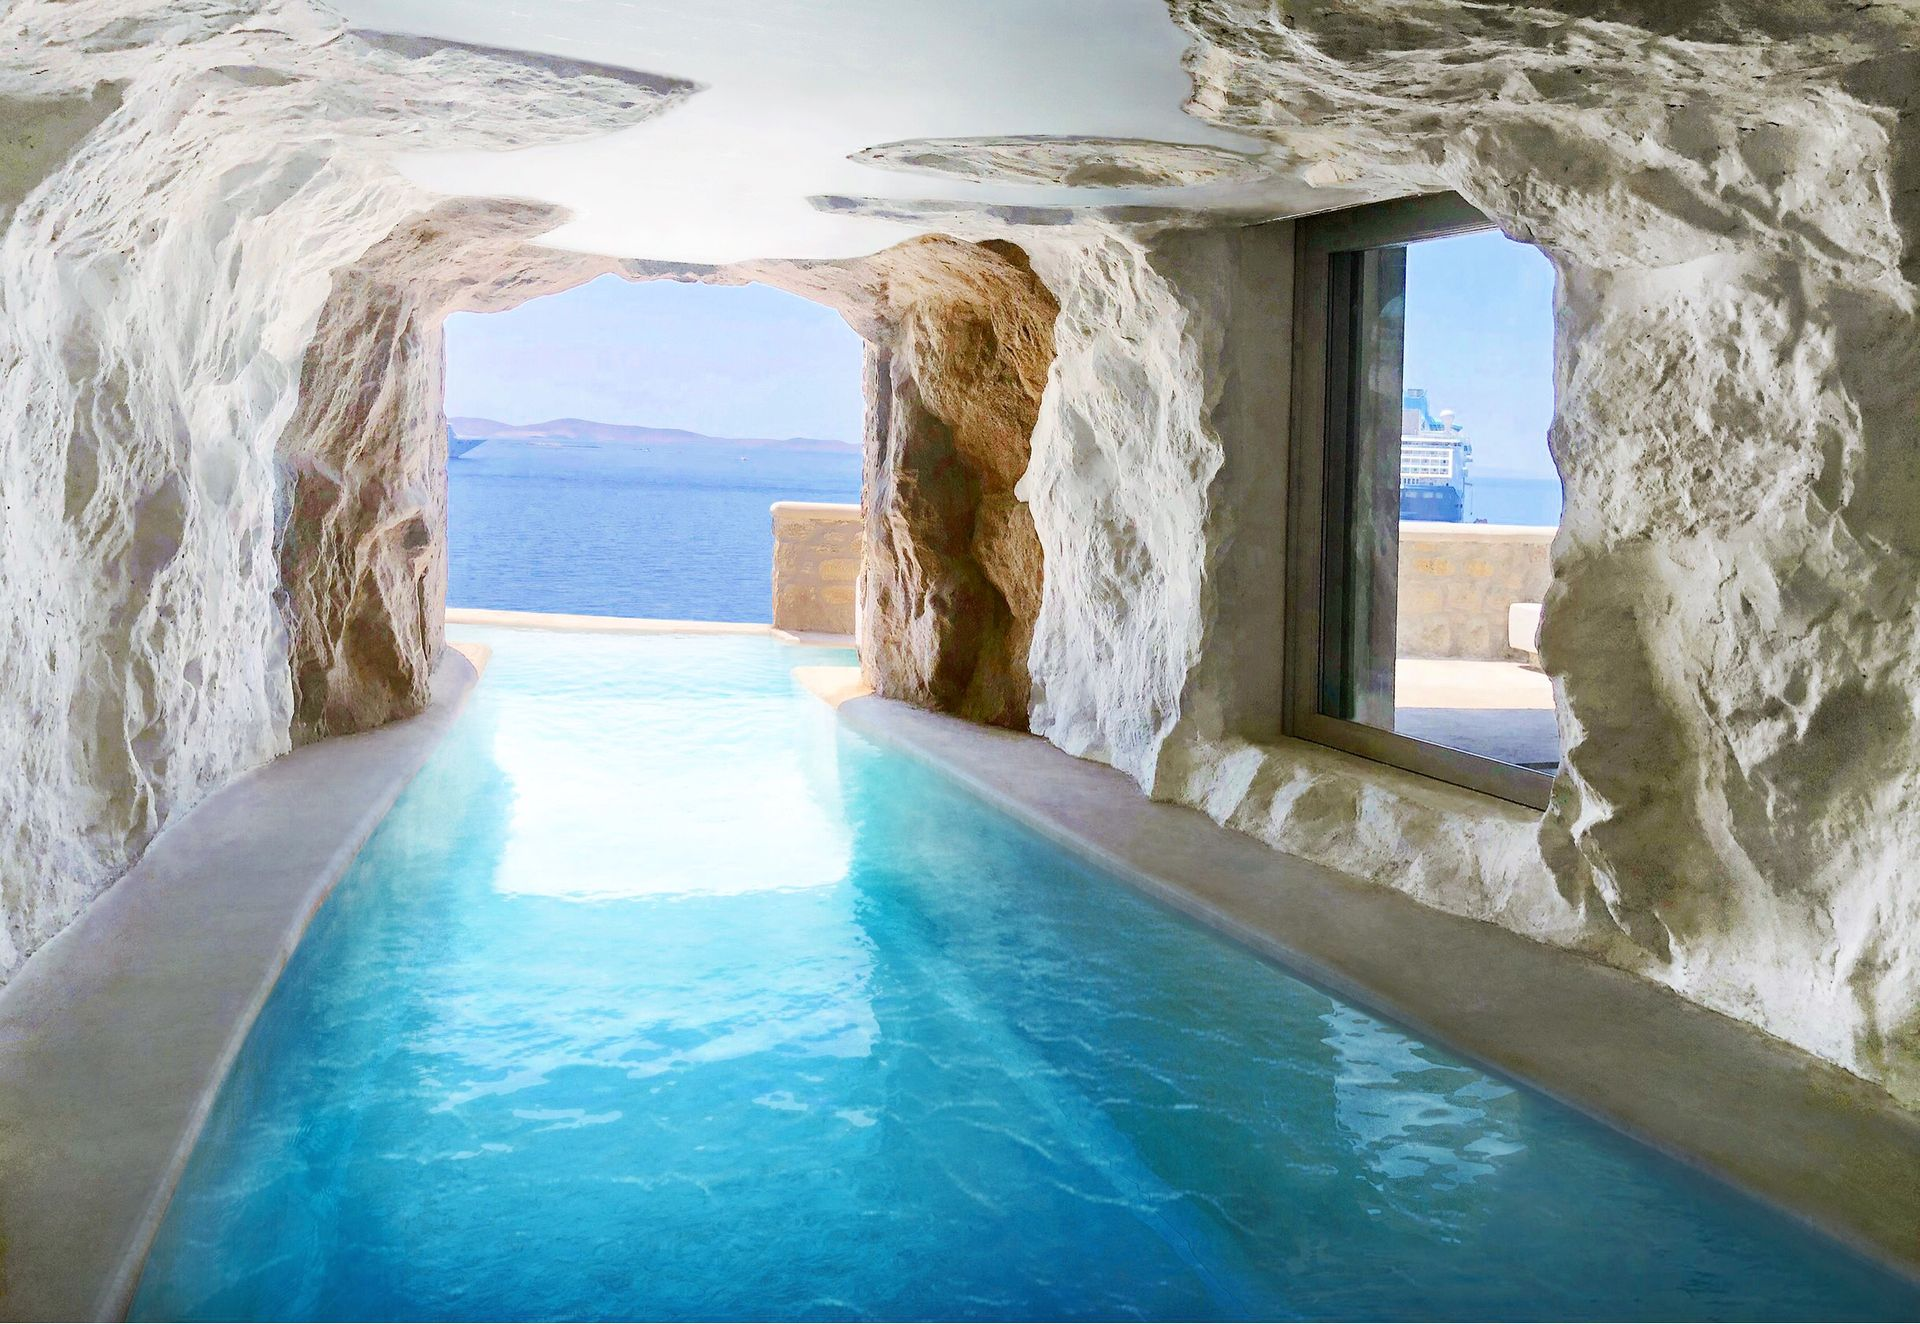 Billedresultat for Cavo Tagoo Cave pool, Greece